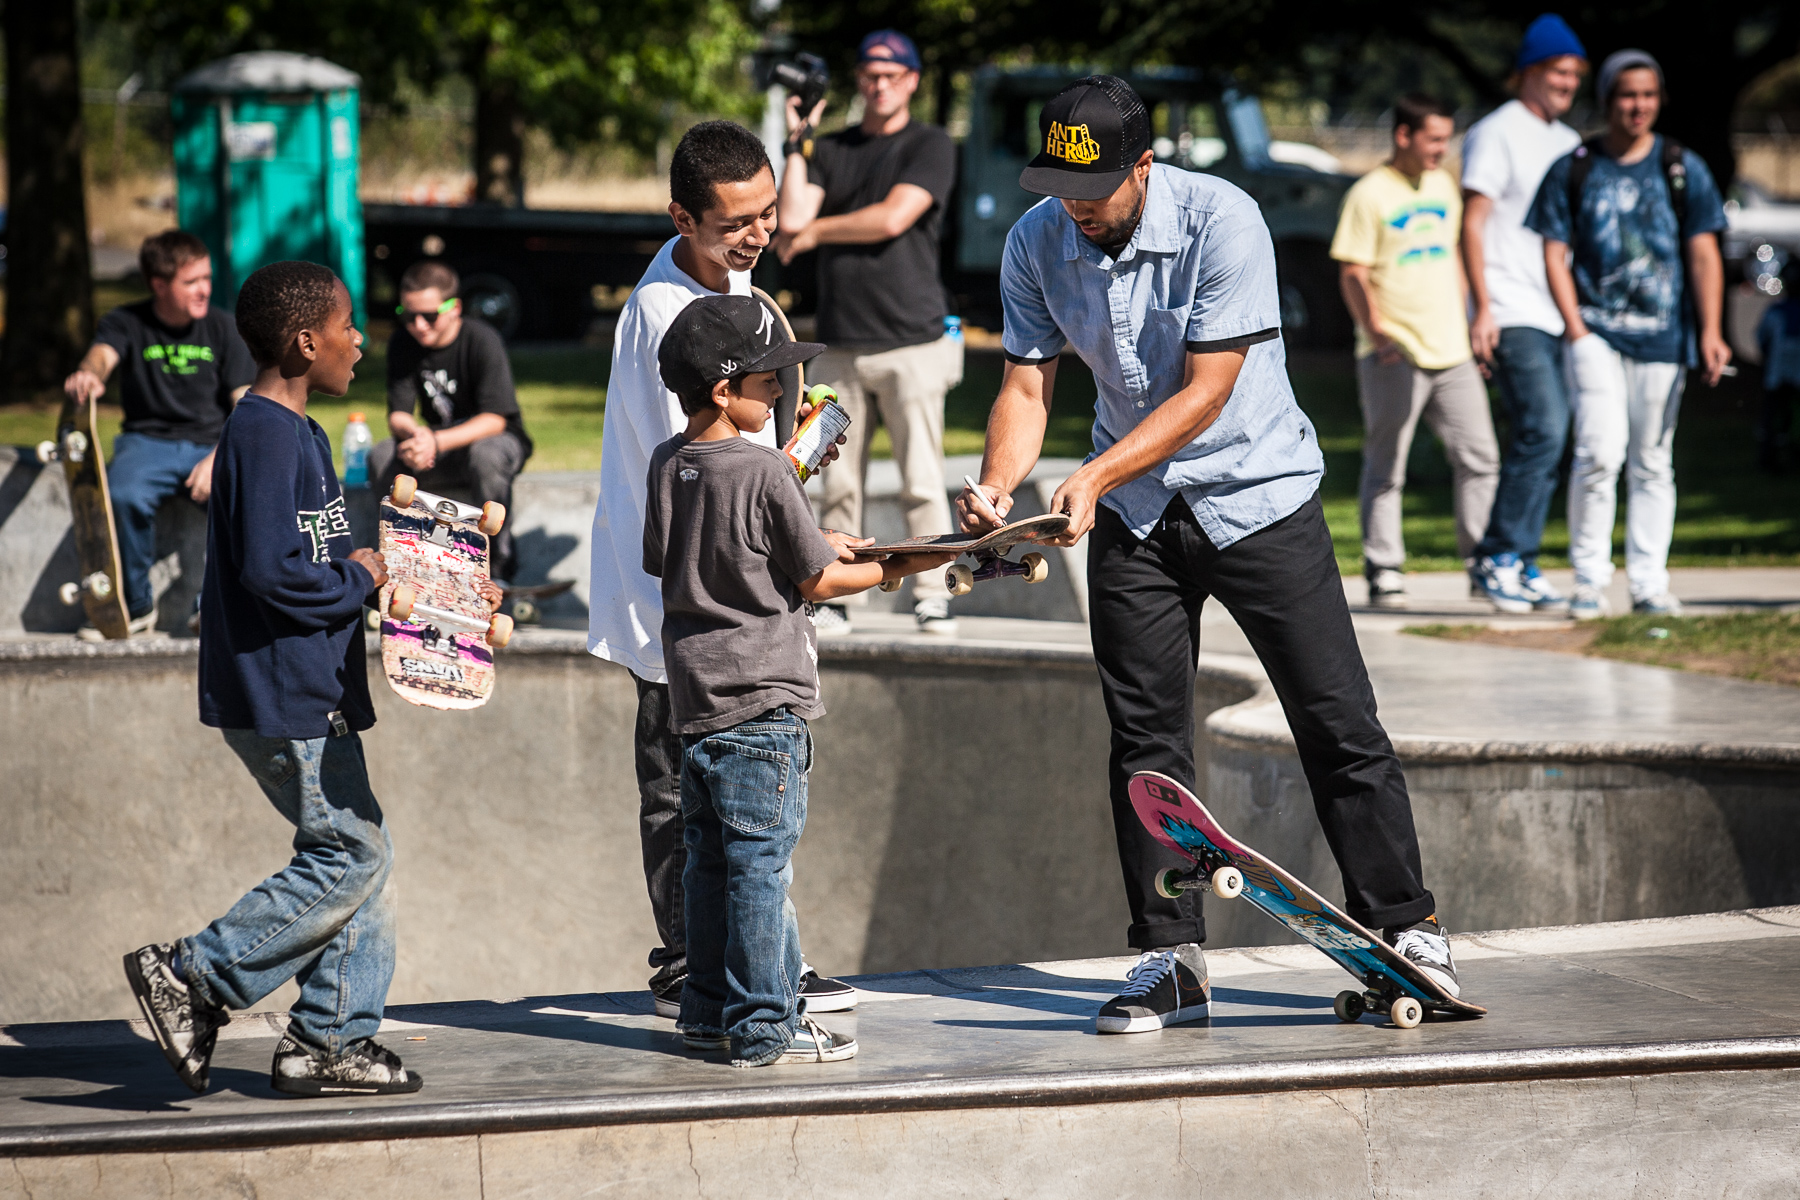 Pro skater Eric Koston offers up his autograph to the next generation of skaters at Glenhaven Skatepark.